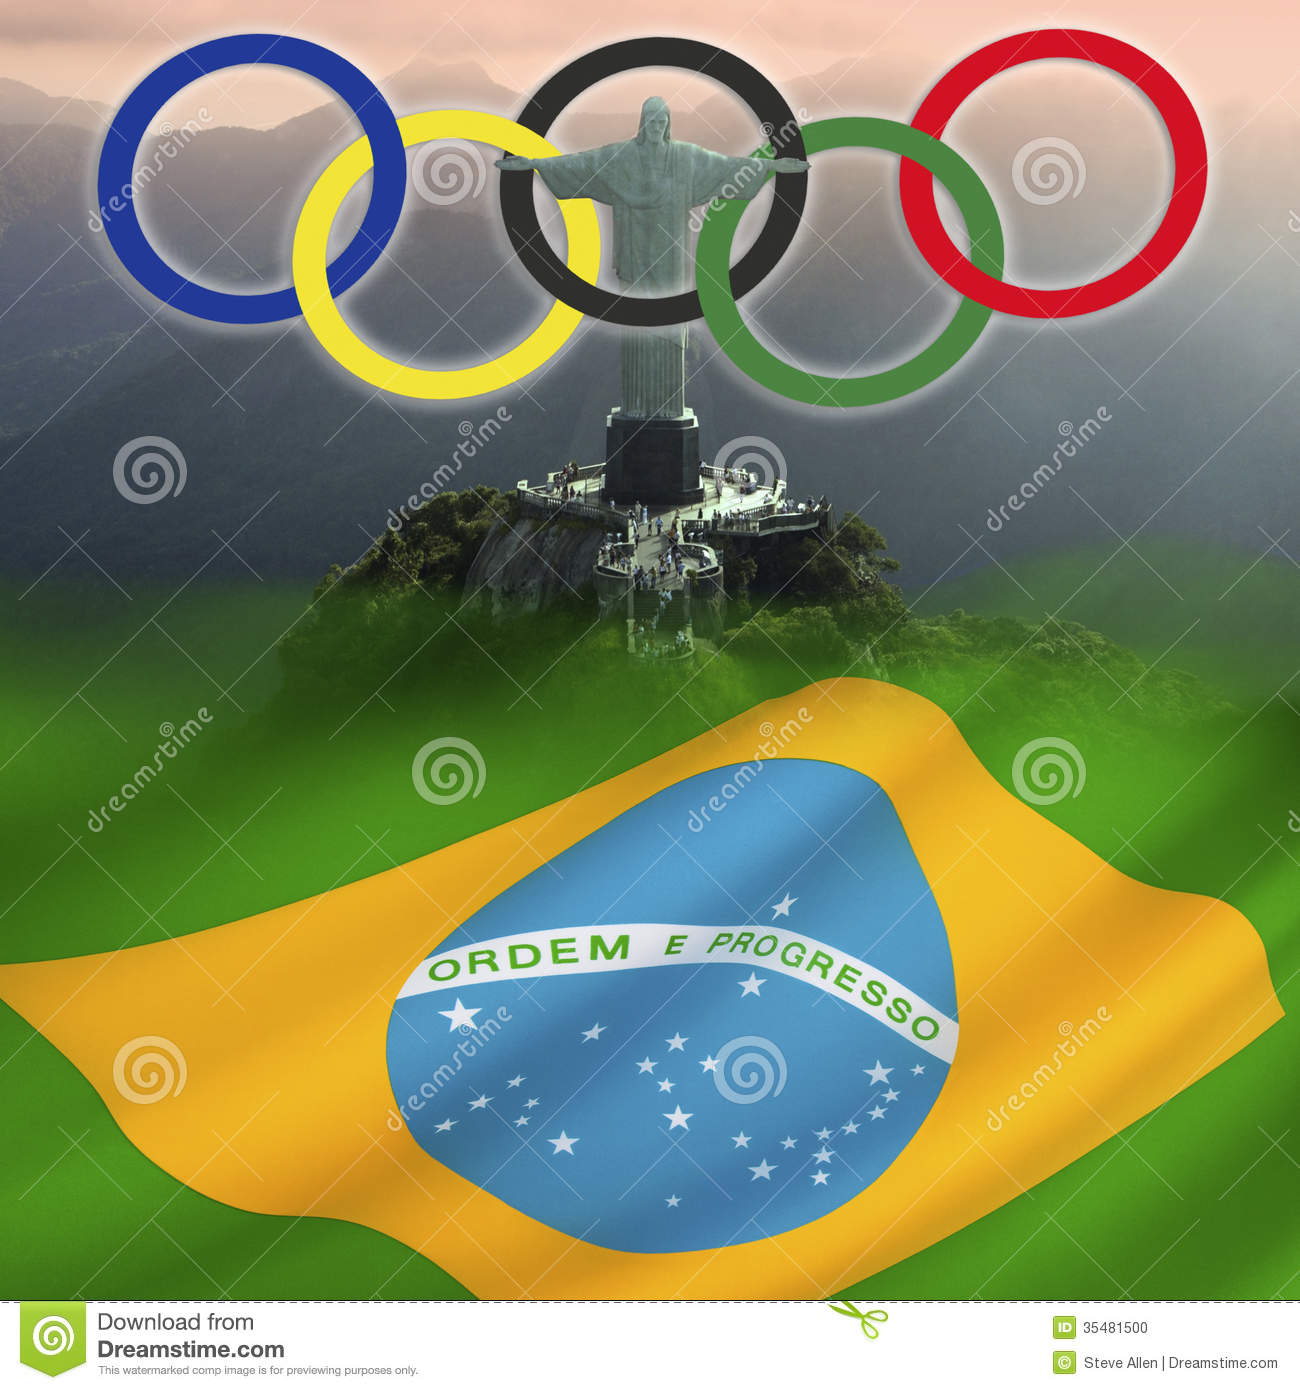 ... Olympics, officially known as the Games of the XXXI Olympiad, will be